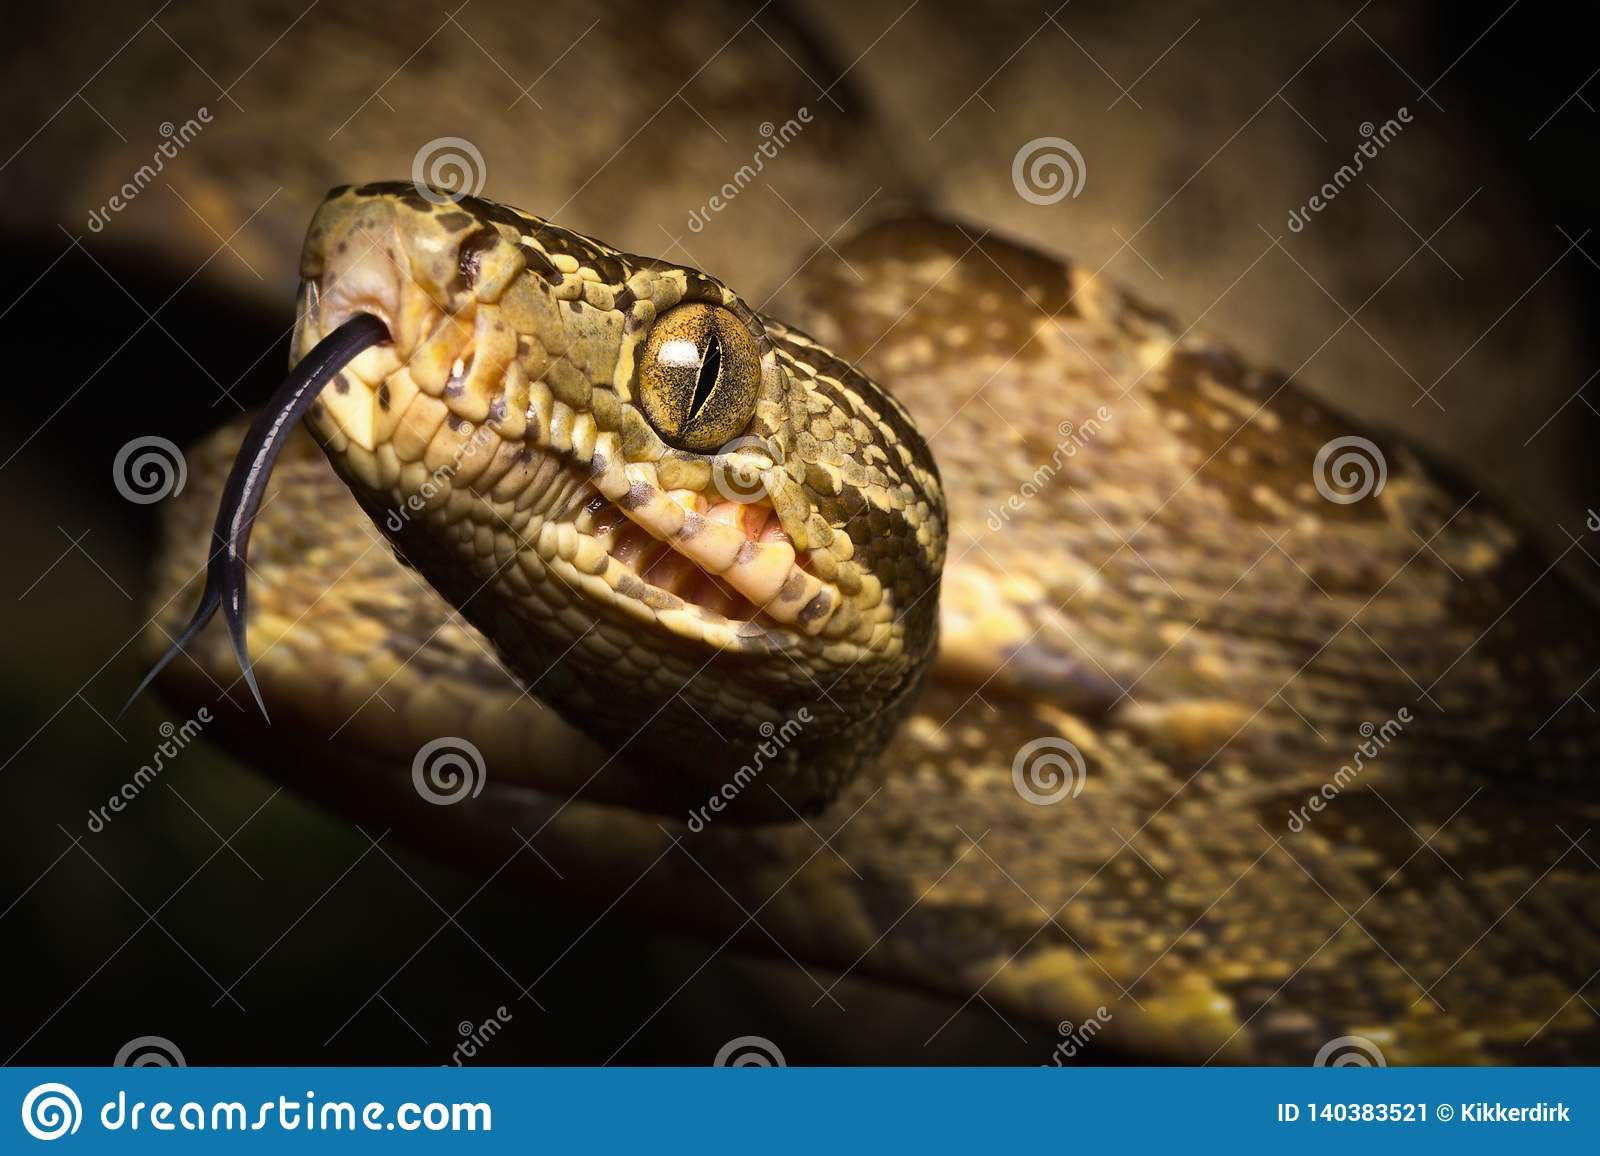 Tropical snake, tree boa Corallus hortulanus a serpent of the Amazon rain forest in Colombia